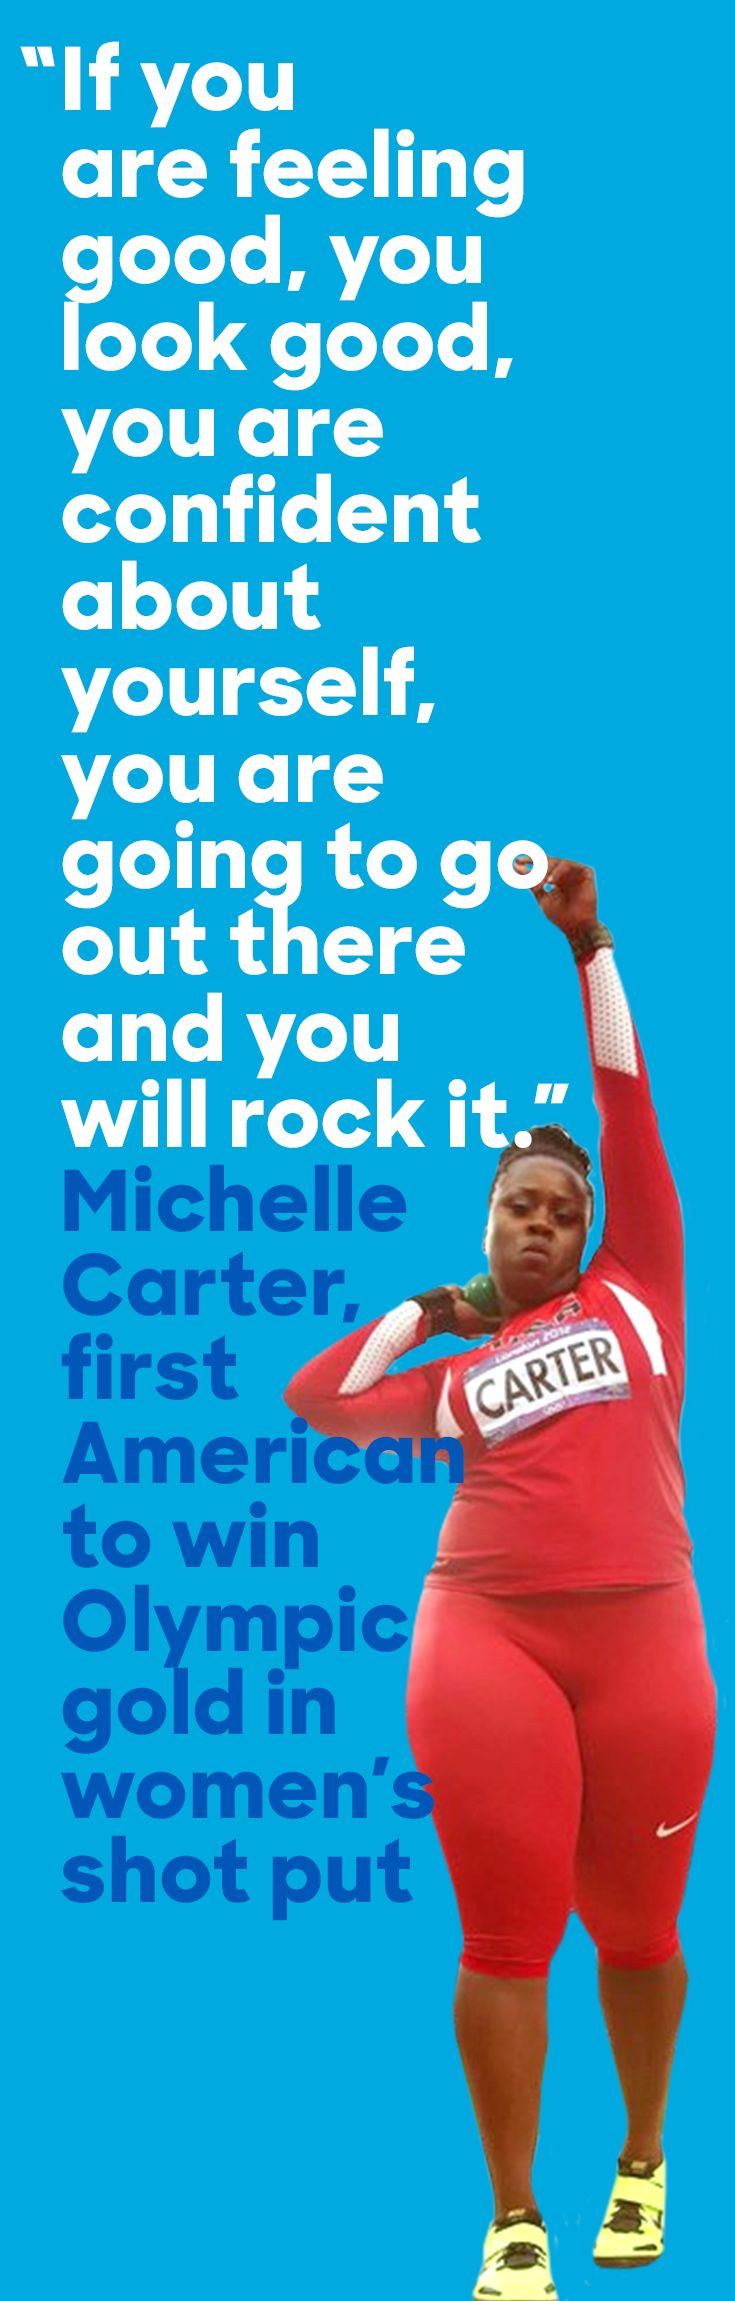 Michelle Carter made Olympic history in the women's shot put, earning Team USA's first gold medal in the event during the Rio games. Congratulations, Michelle!